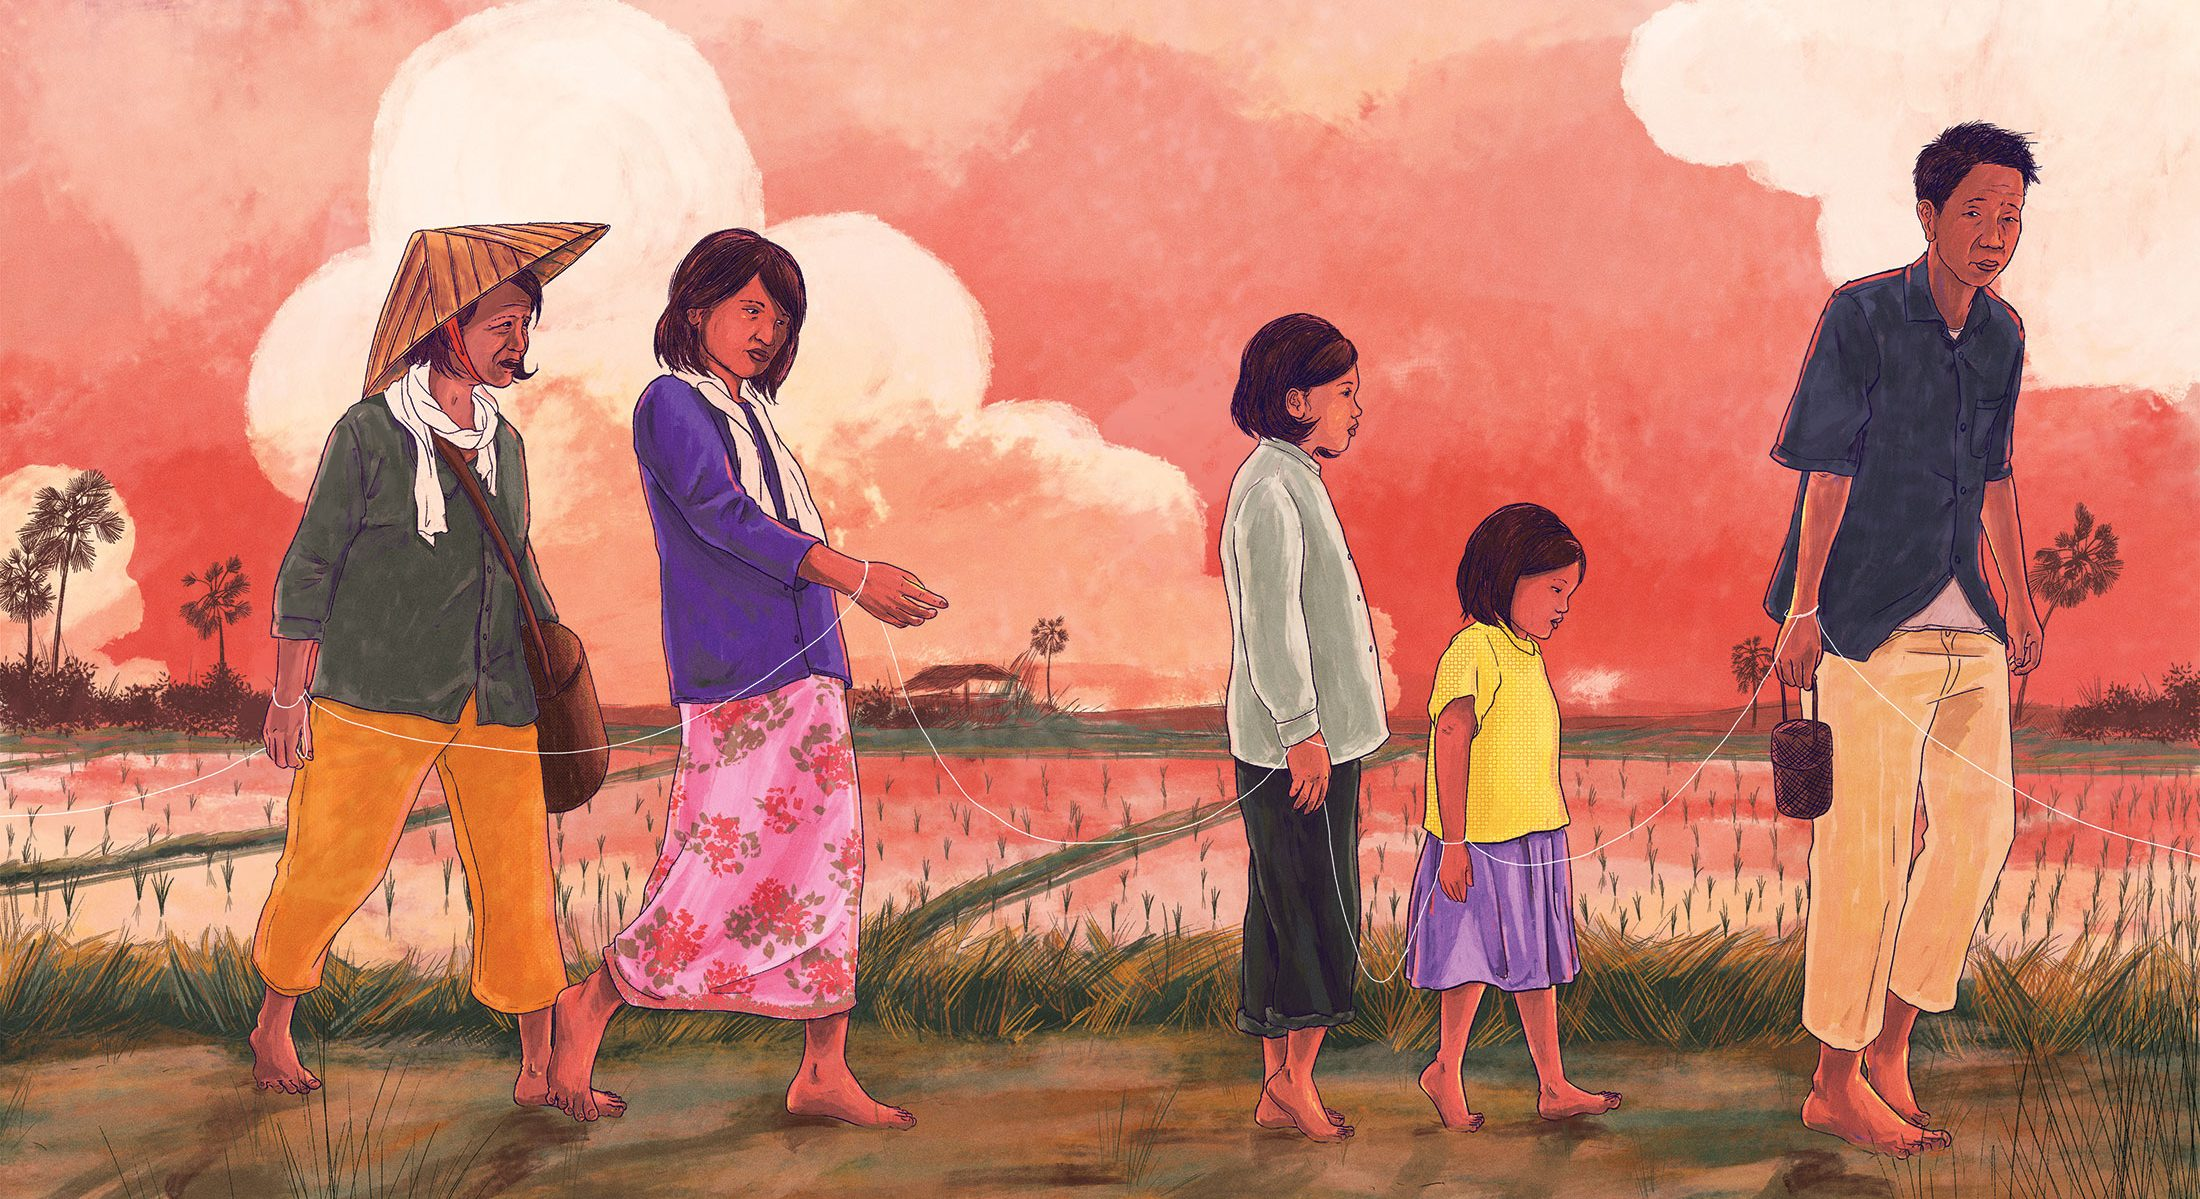 Illustration of a family at dusk forced to make an arduous walk tied together with a white string connecting the family.